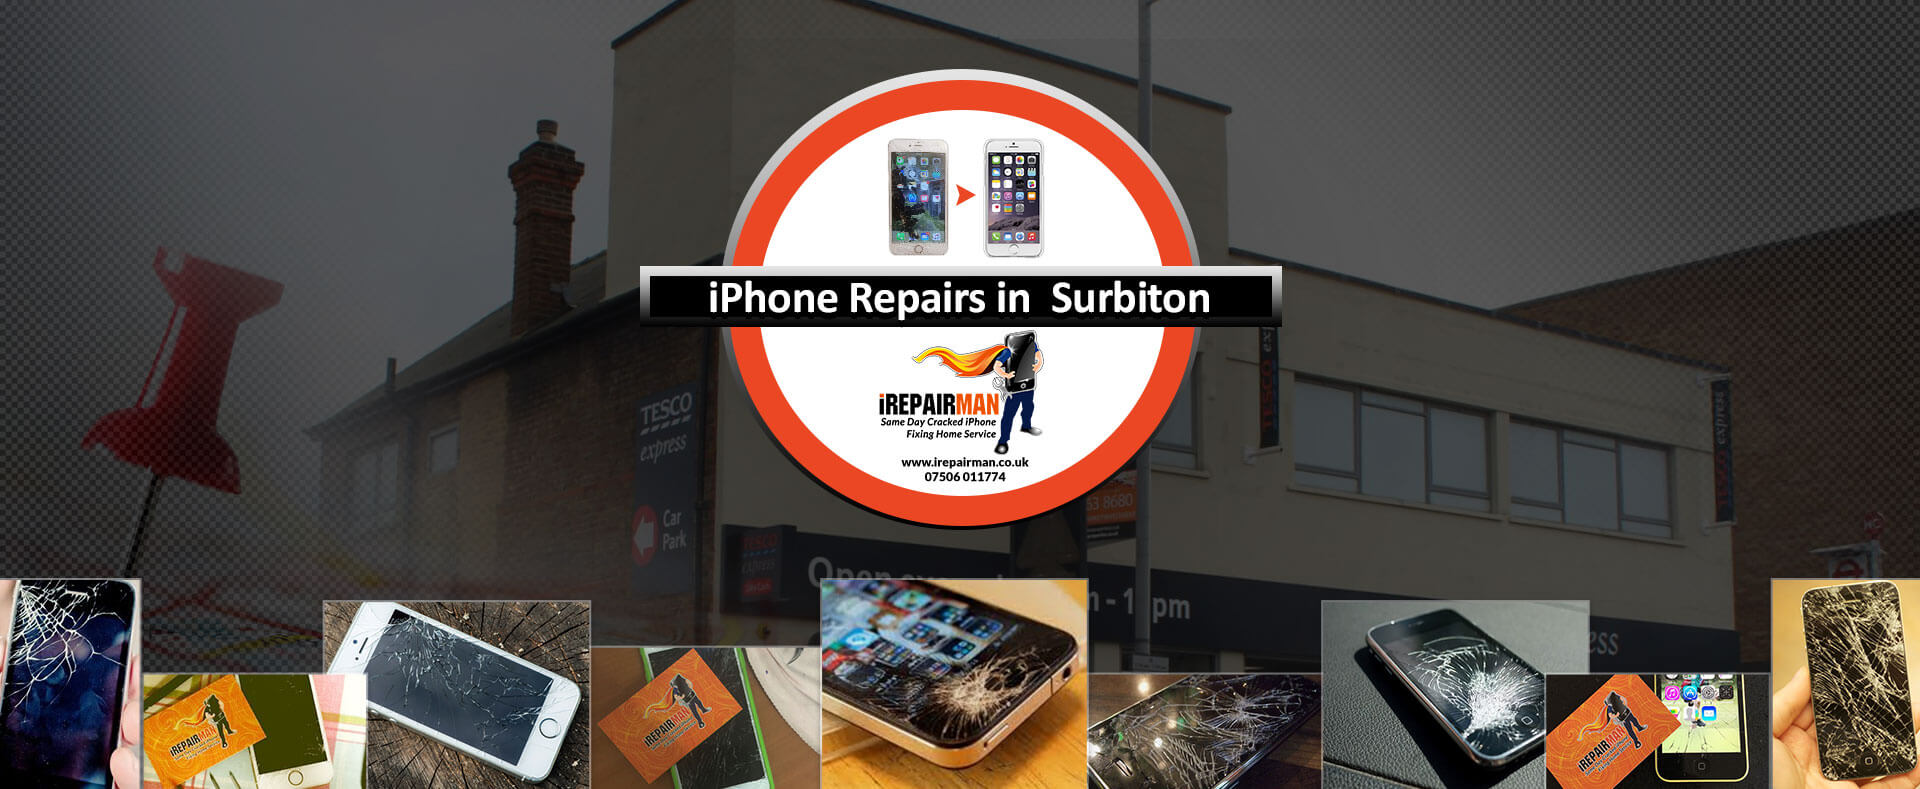 iPhone Repairs in Surbiton